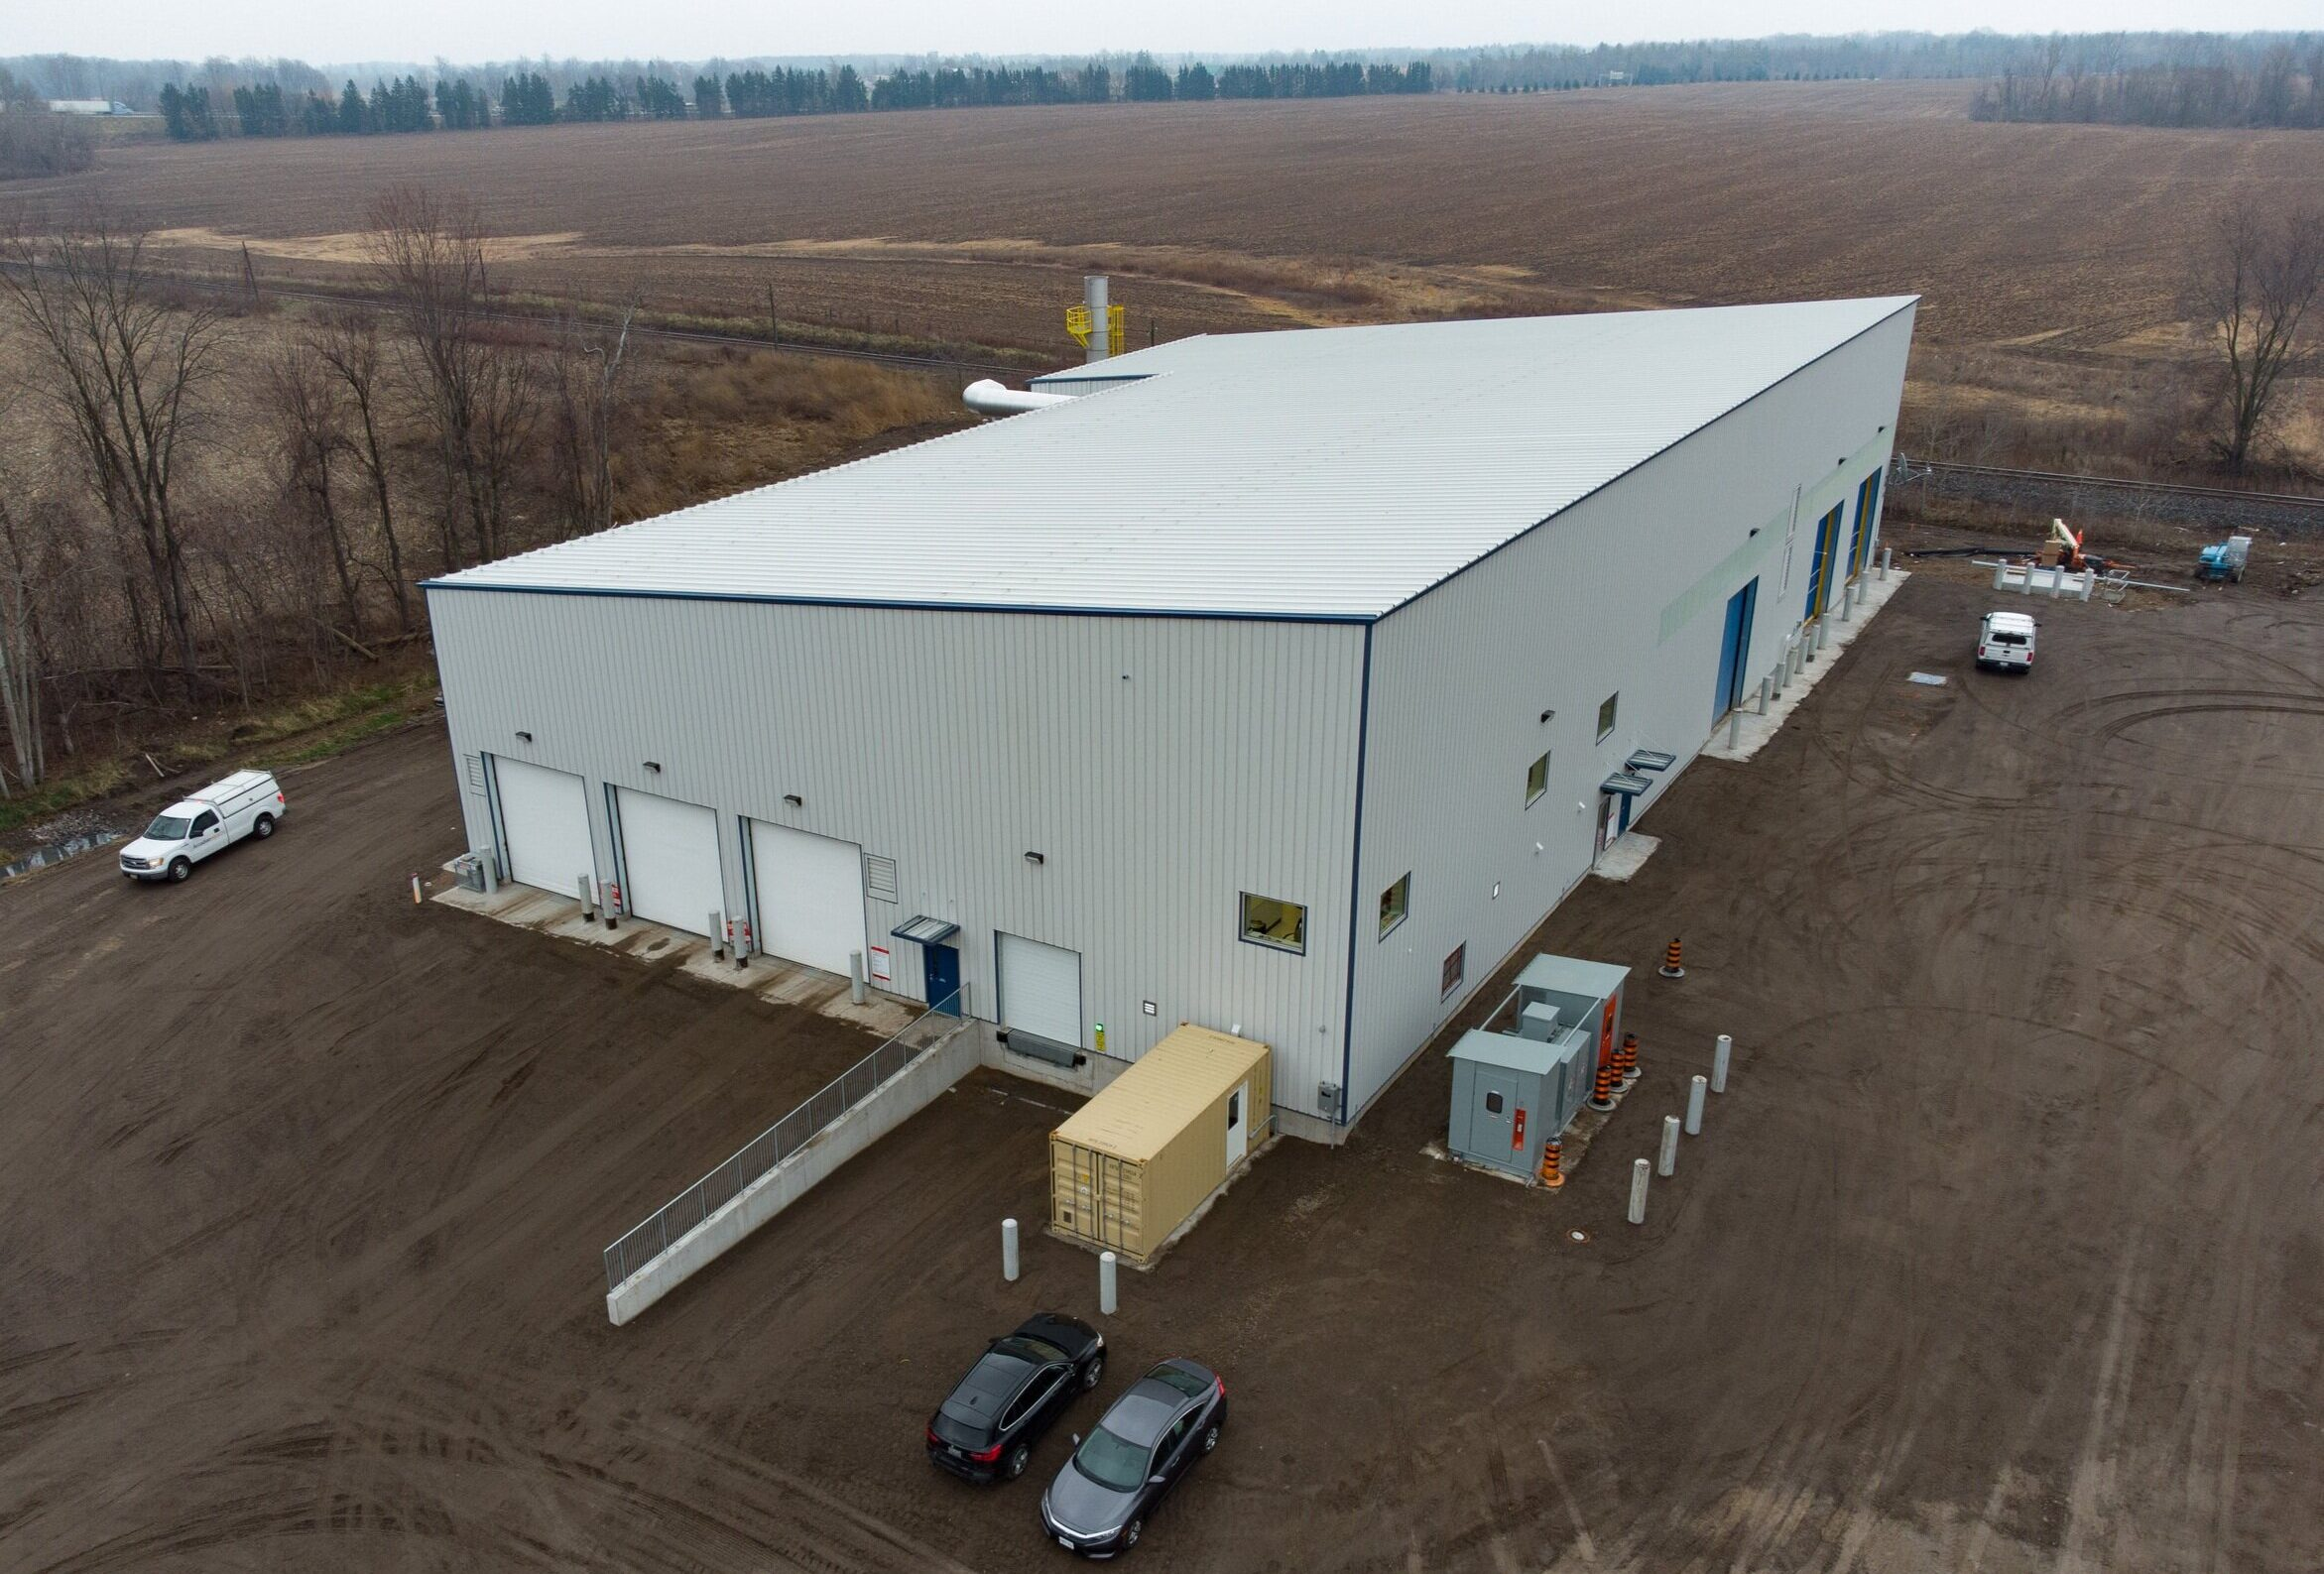 StormFisher-Food-Waste-Recovery-Facility